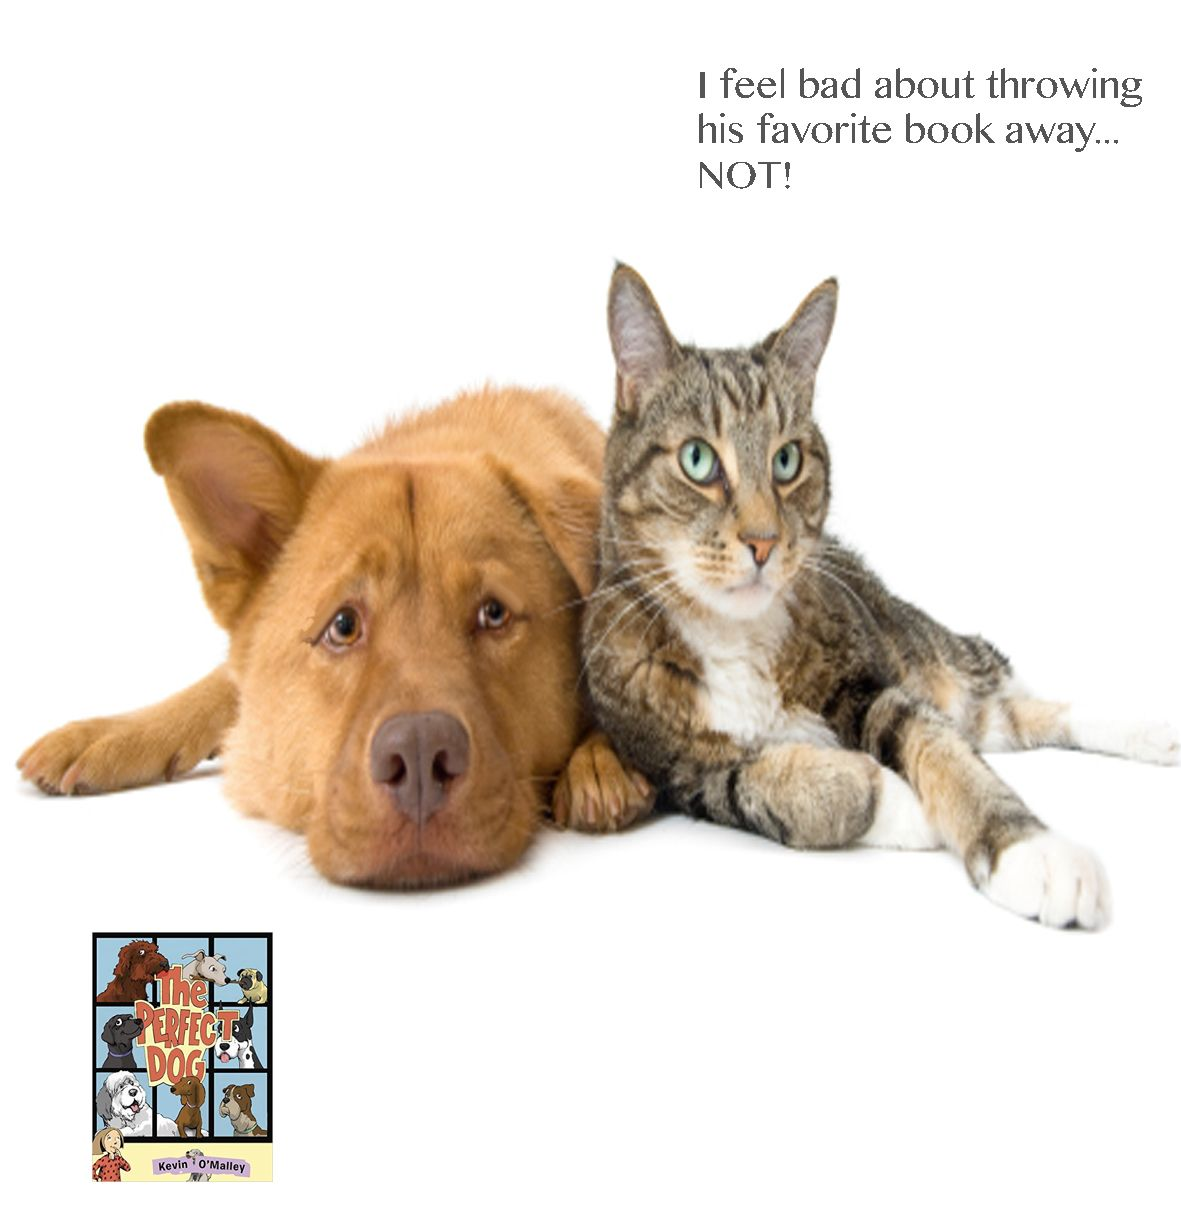 Pin By Booksbyomalley On Kevin O Malley Pets Pet Sitters Best Friends Pets